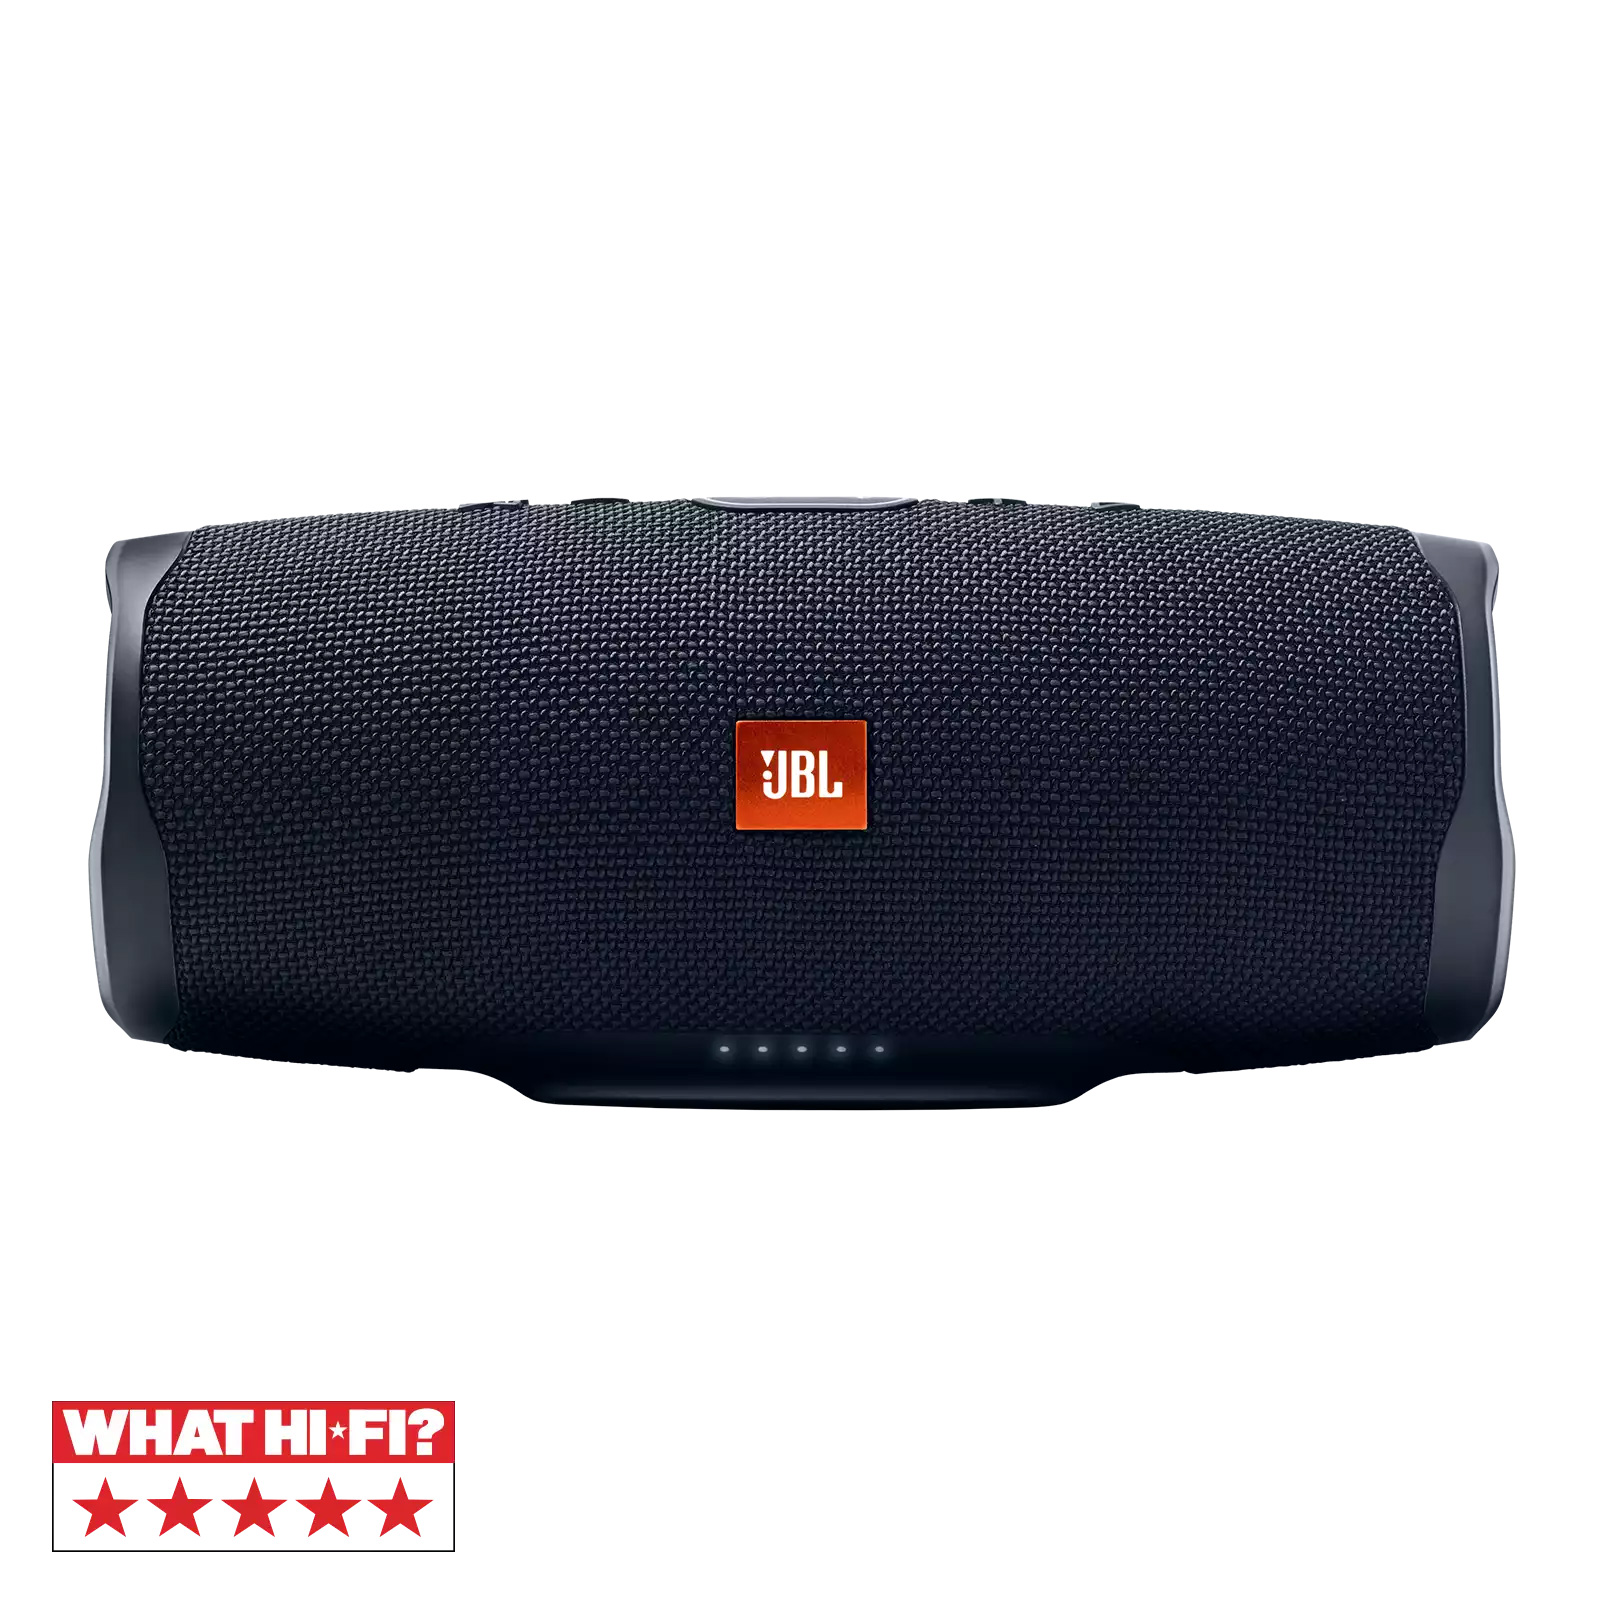 JBL_Charge4_Front_Midnight_Black_1605x1605px